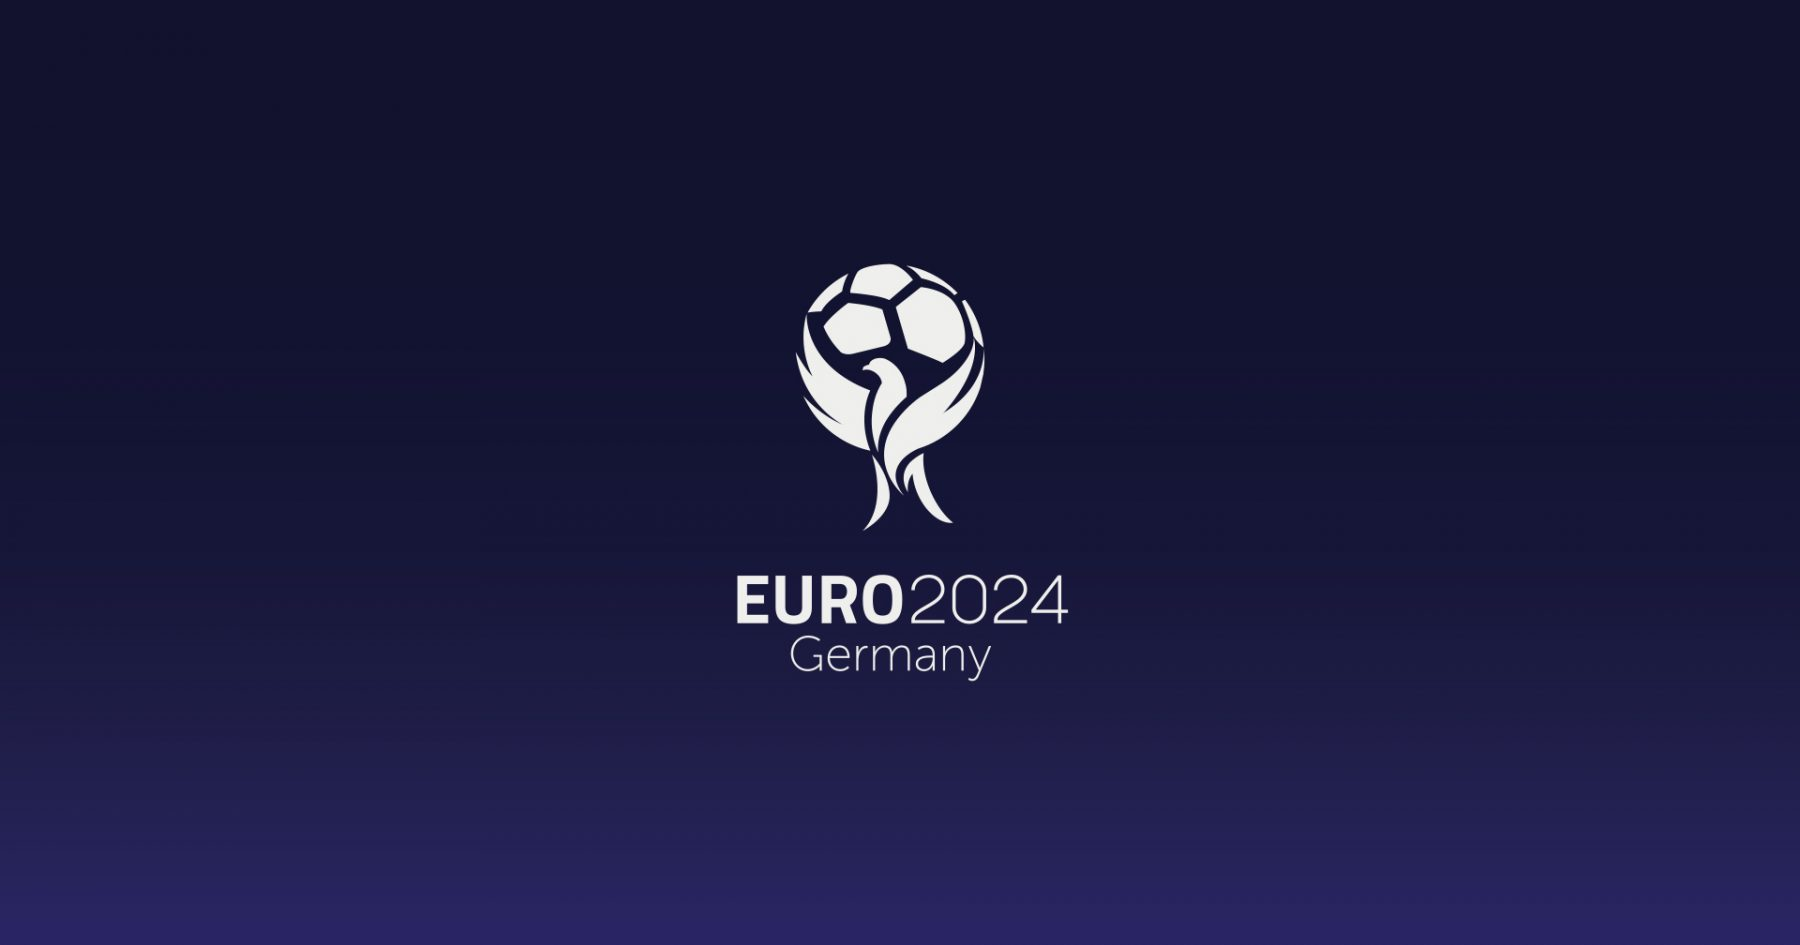 17th edition of the UEFA European Championship, Germany June – July 2024,Jovoto, football, reputation, logo, branding